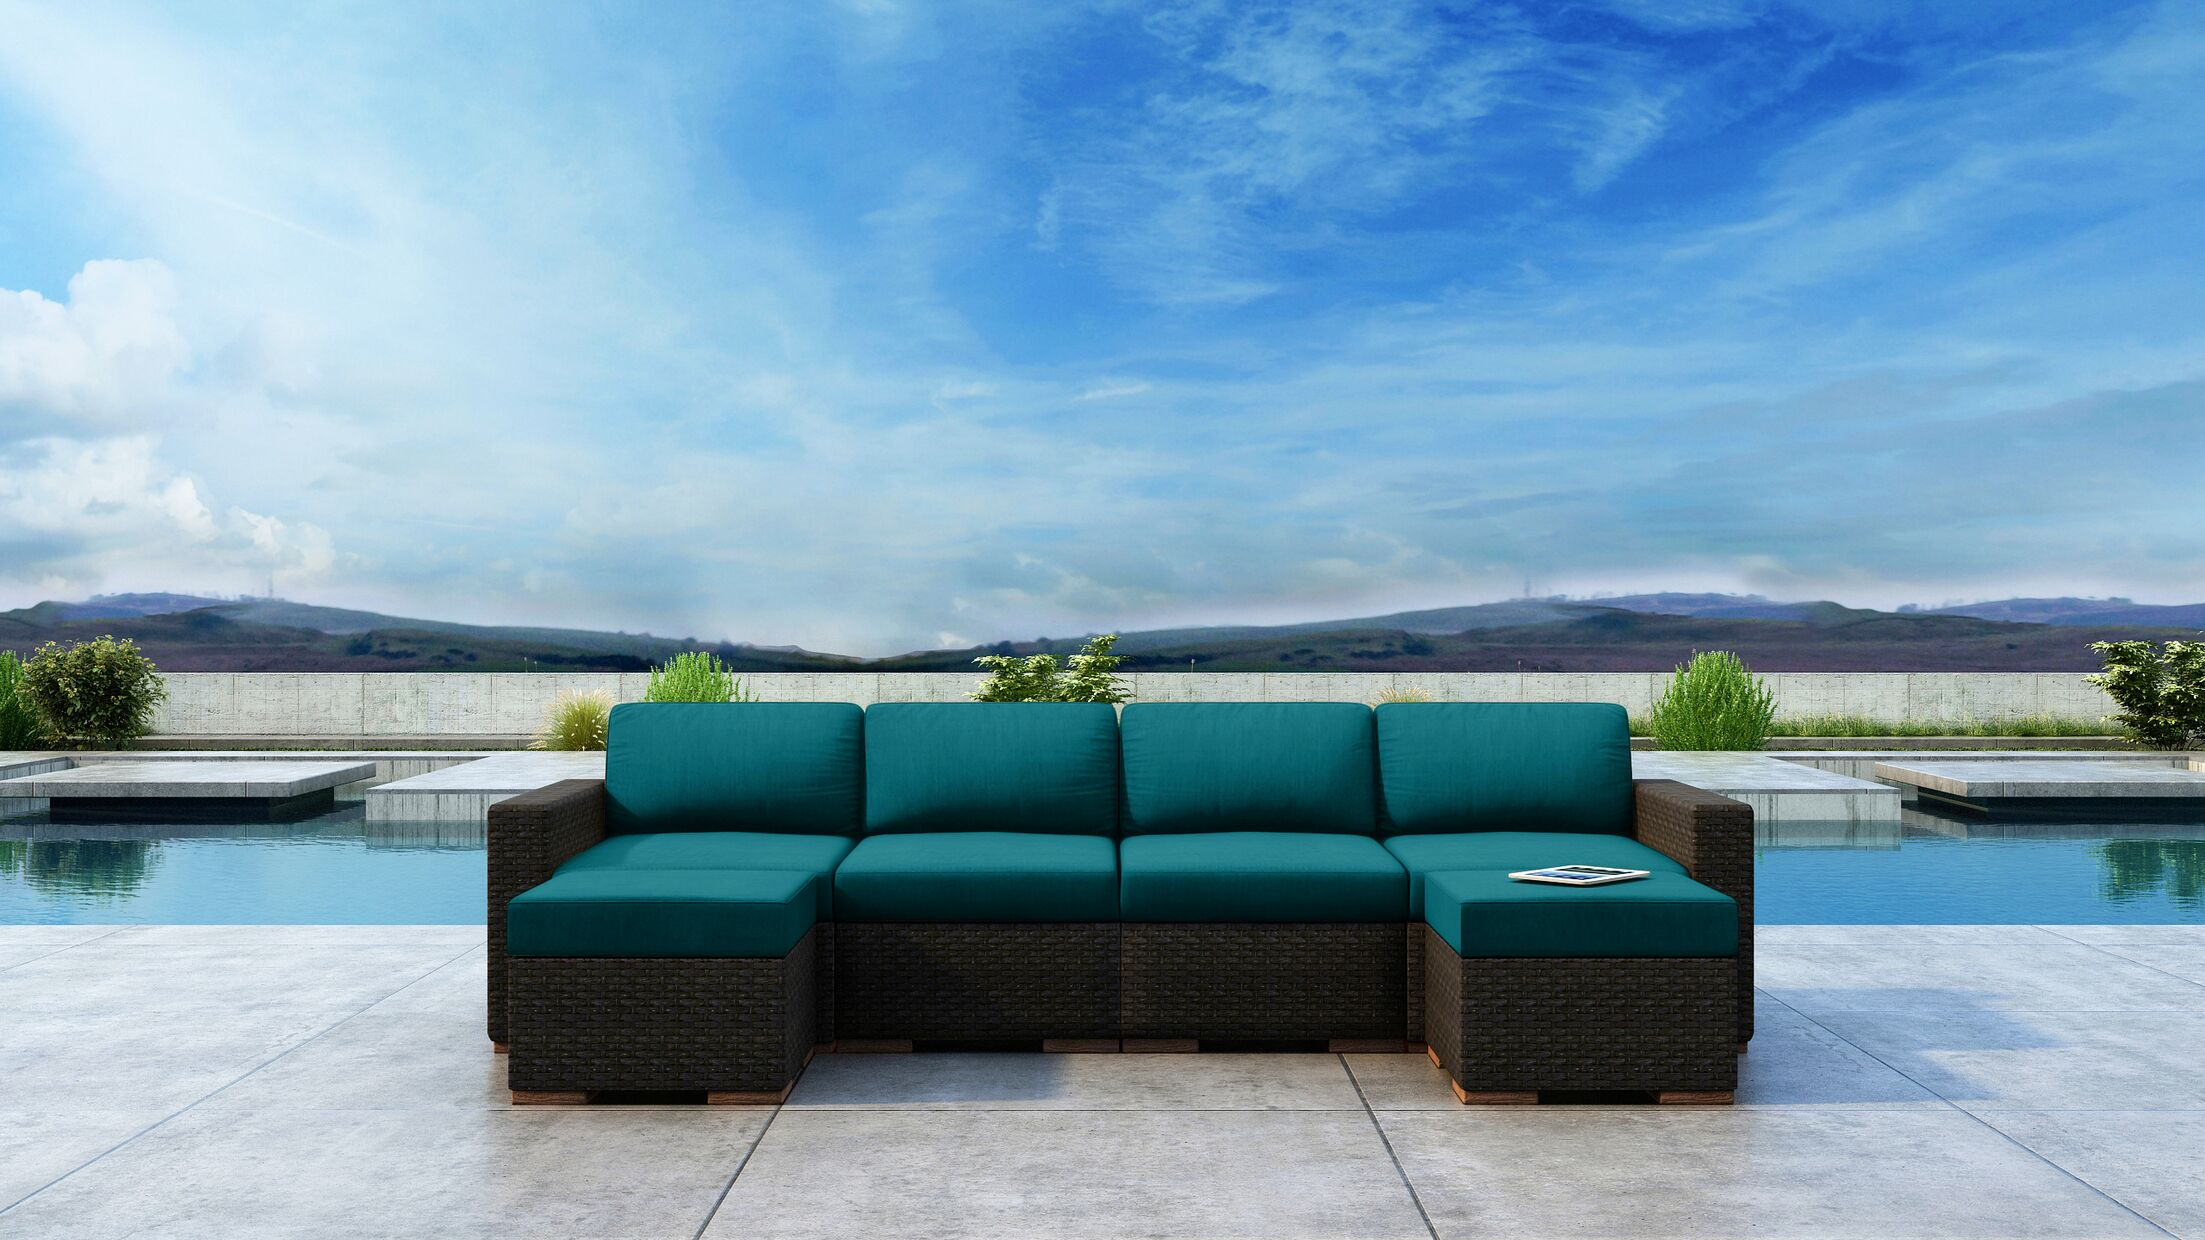 Glen Ellyn 6 Piece Sectional Set with Sunbrella Cushion Cushion Color: Spectrum Peacock